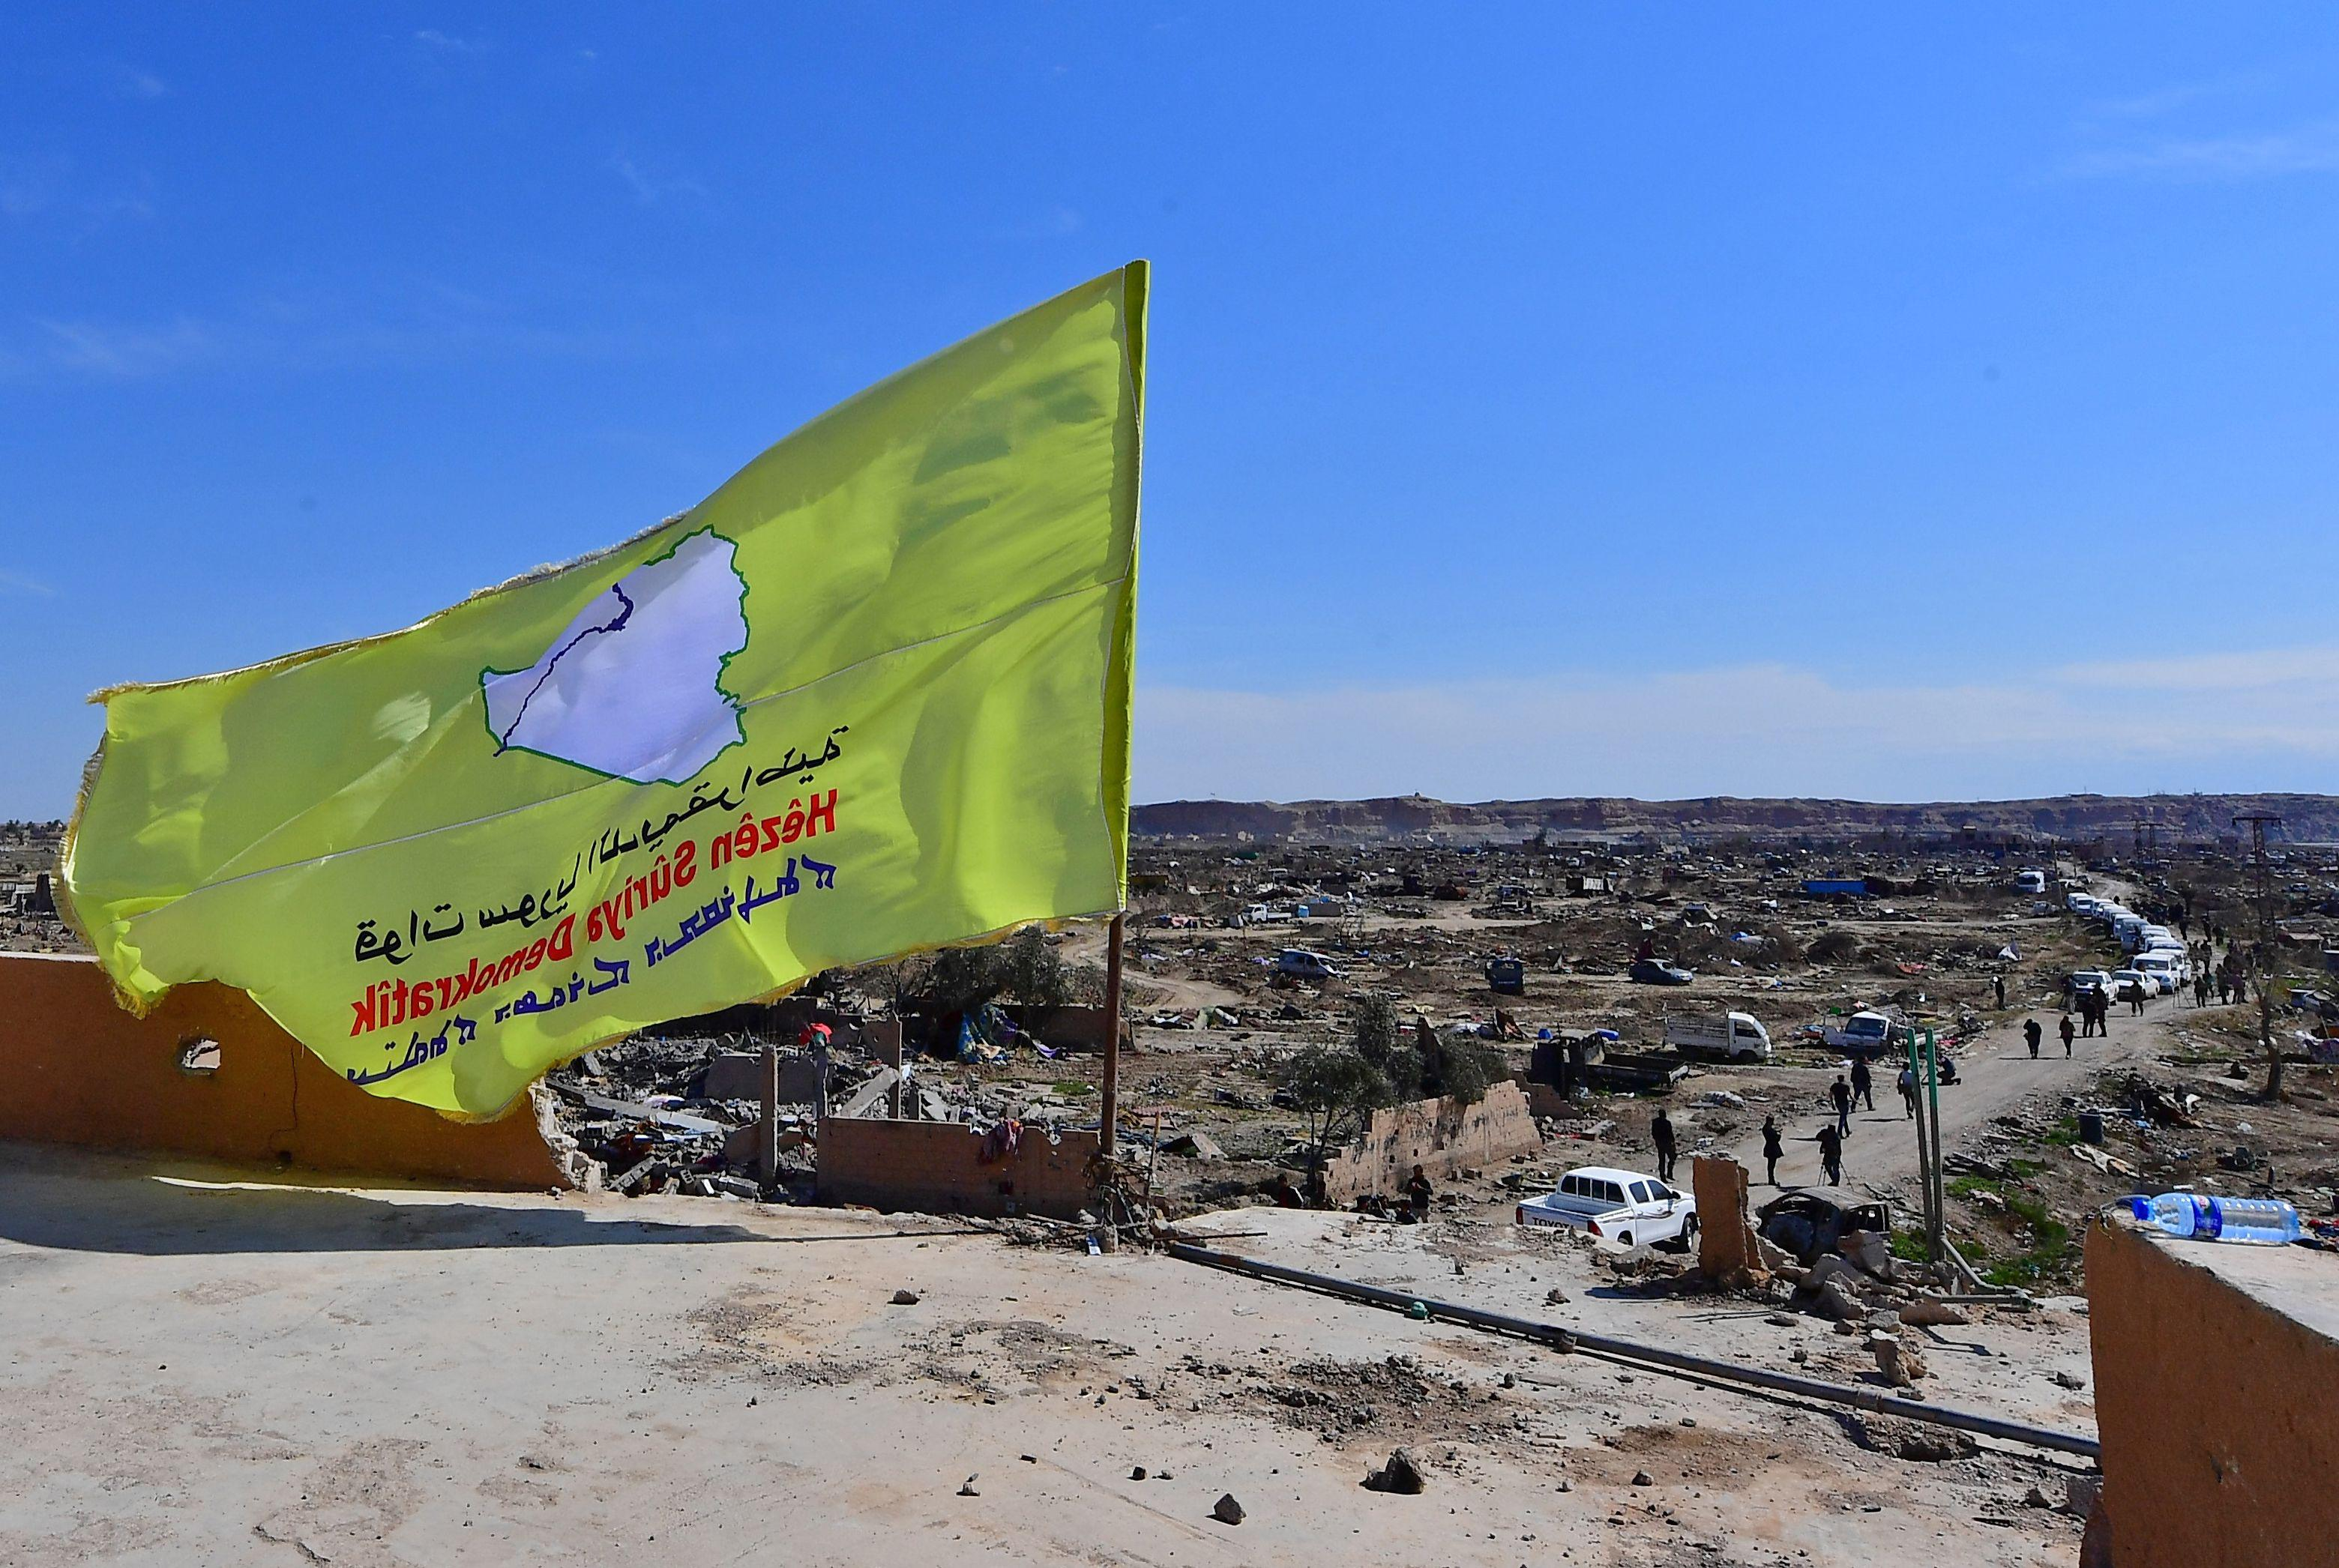 A picture taken on March 23, 2019 shows the US-backed Syrian Democratic Forces' (SDF) flag atop a building in the Islamic State group's last bastion in the eastern Syrian village of Baghuz after defeating the jihadist group.